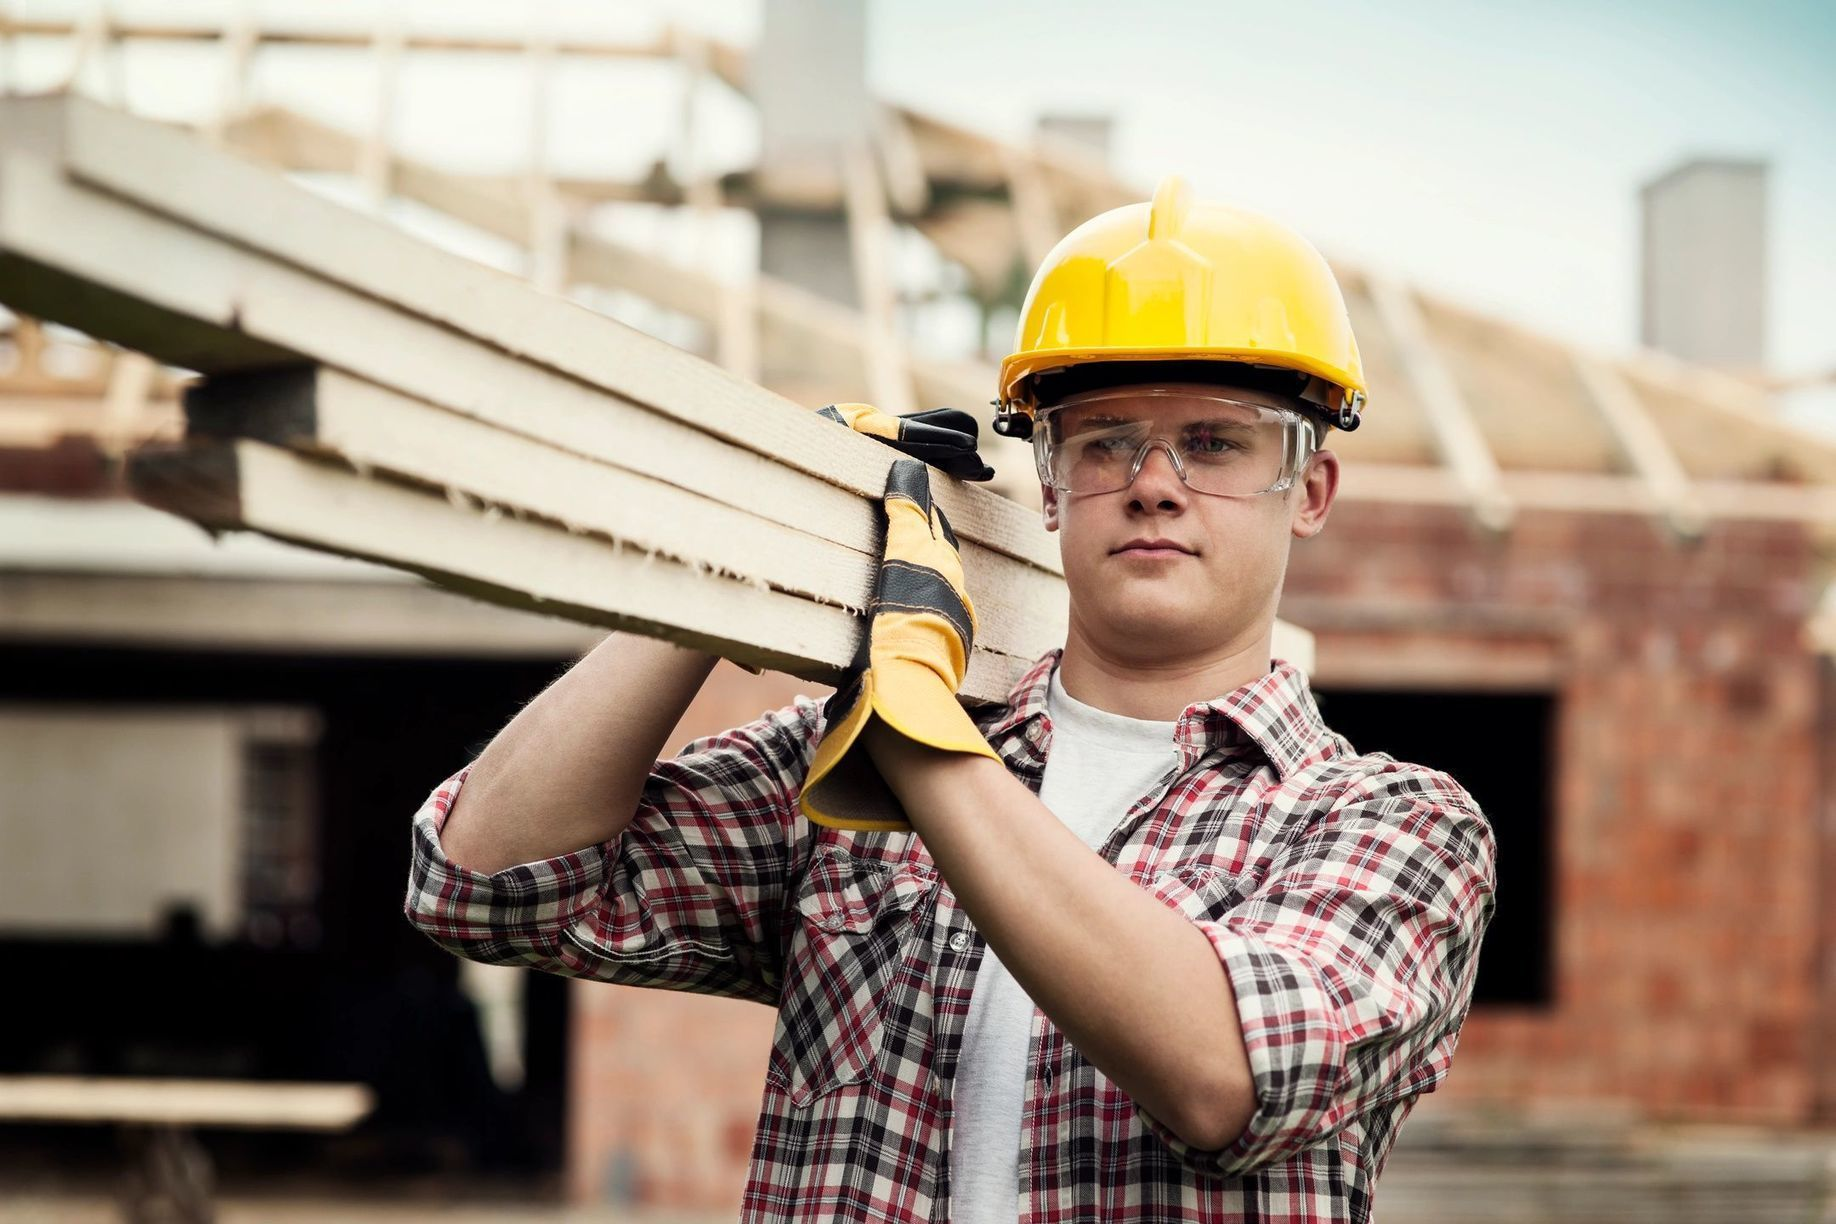 Contact us roofing company construction worker